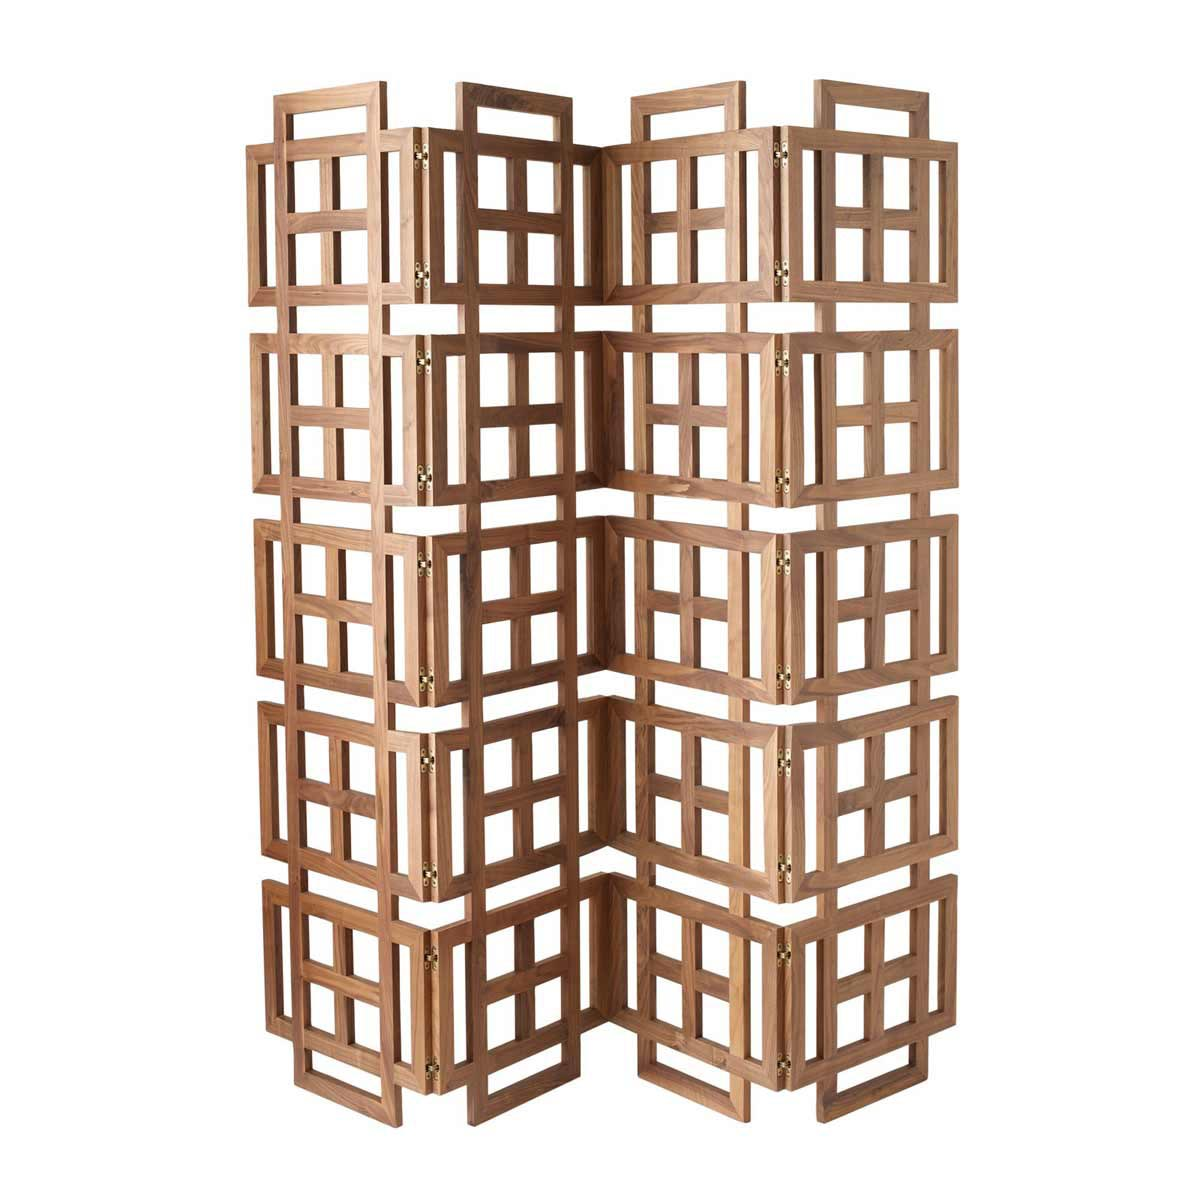 Decorative screens room dividers best decor things - How to decorate my room divider ...